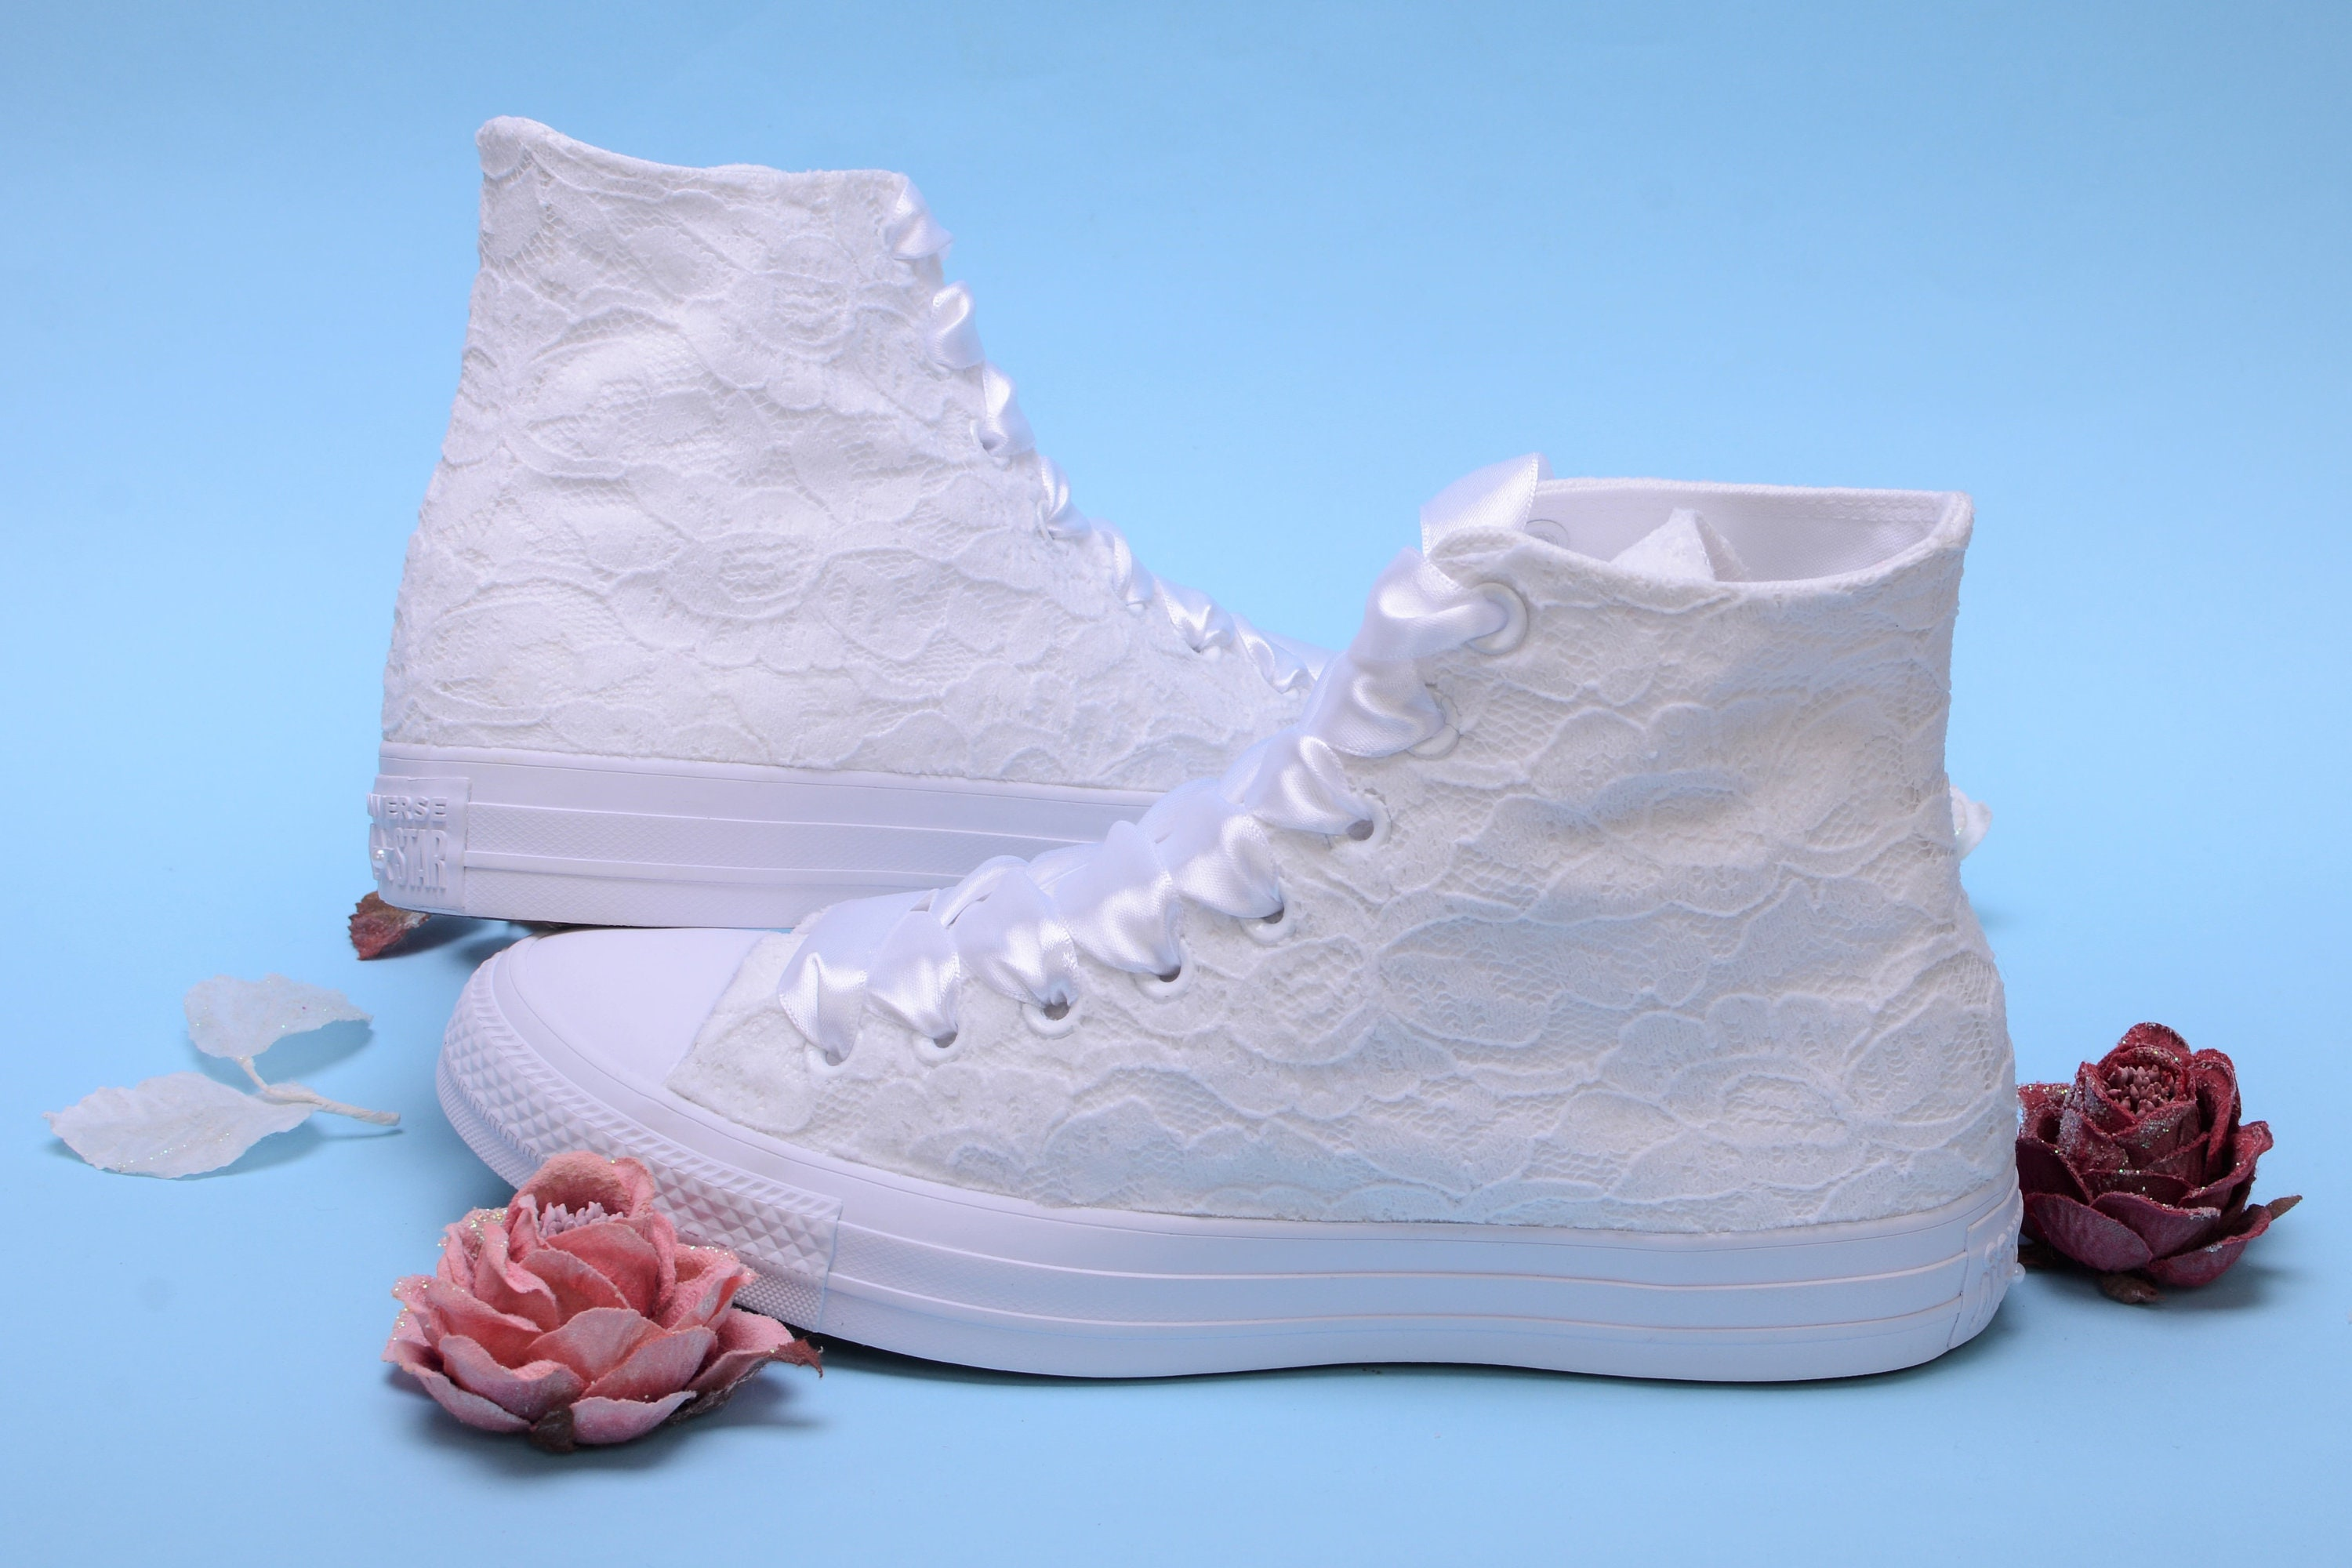 ebc8d4fb521011 White High Top Wedding Converse For Bride